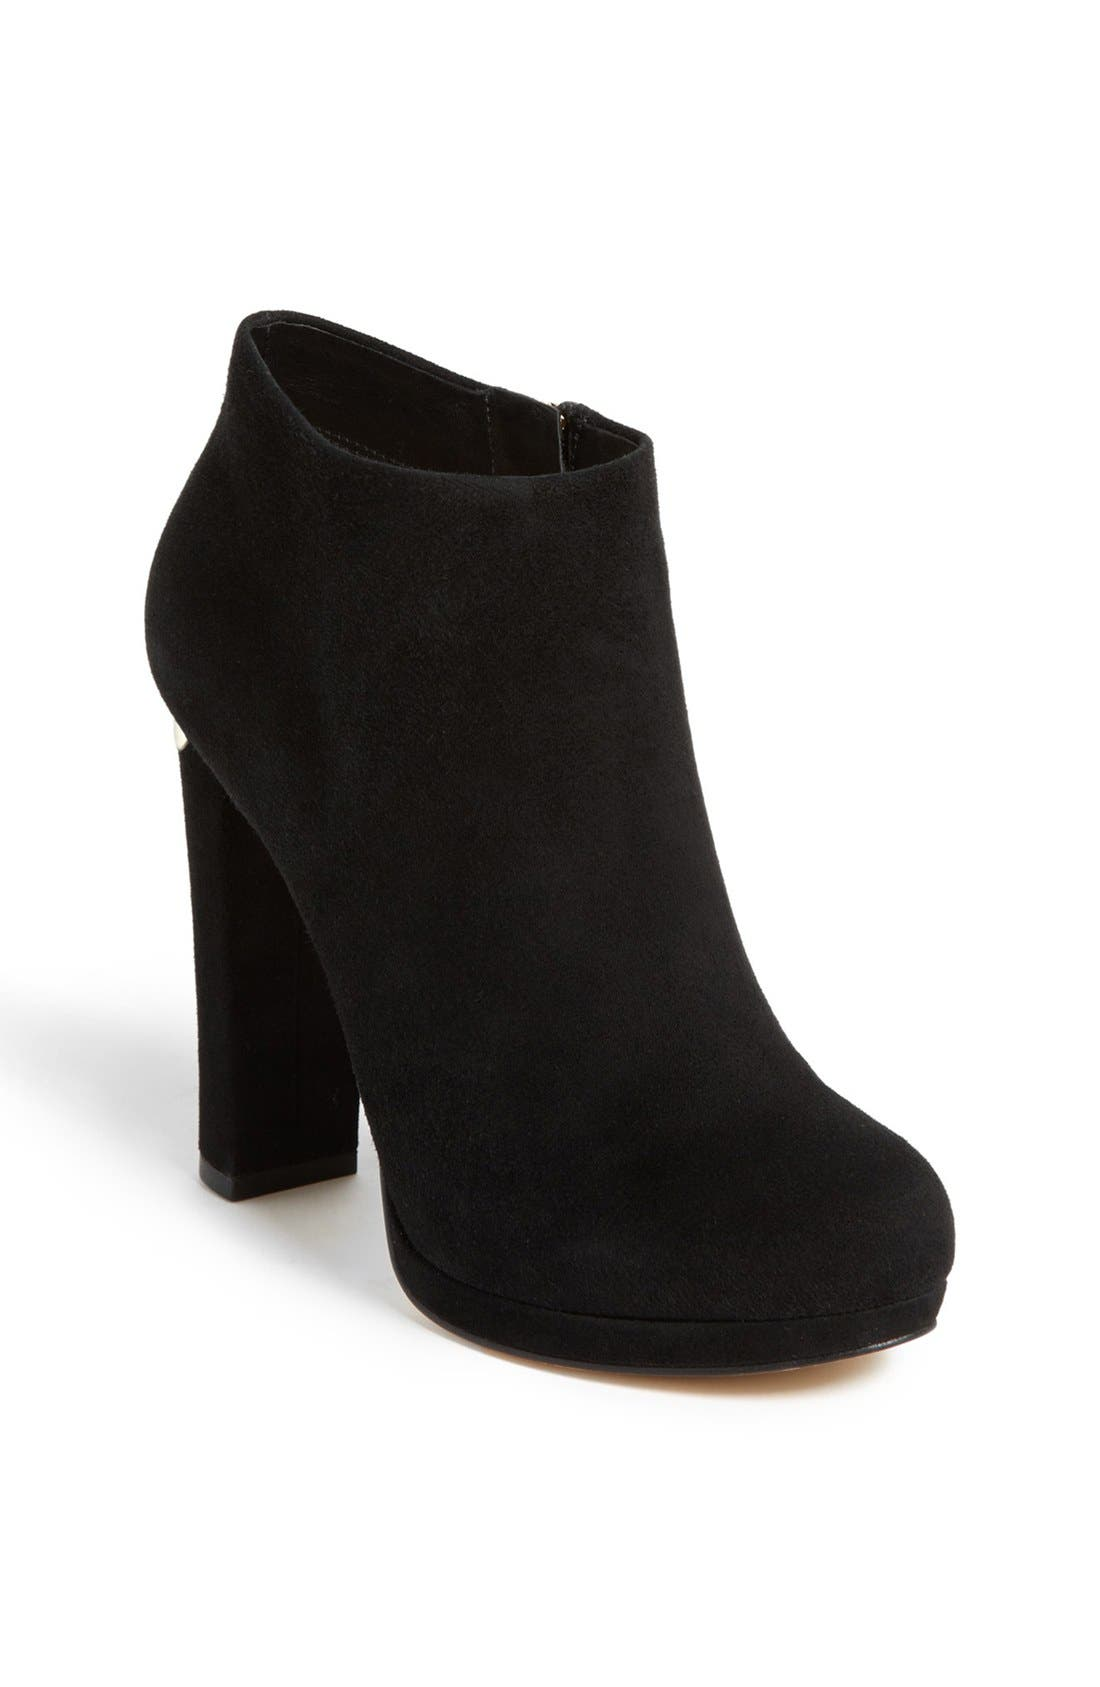 Alternate Image 1 Selected - MICHAEL Michael Kors 'Haven' Platform Bootie